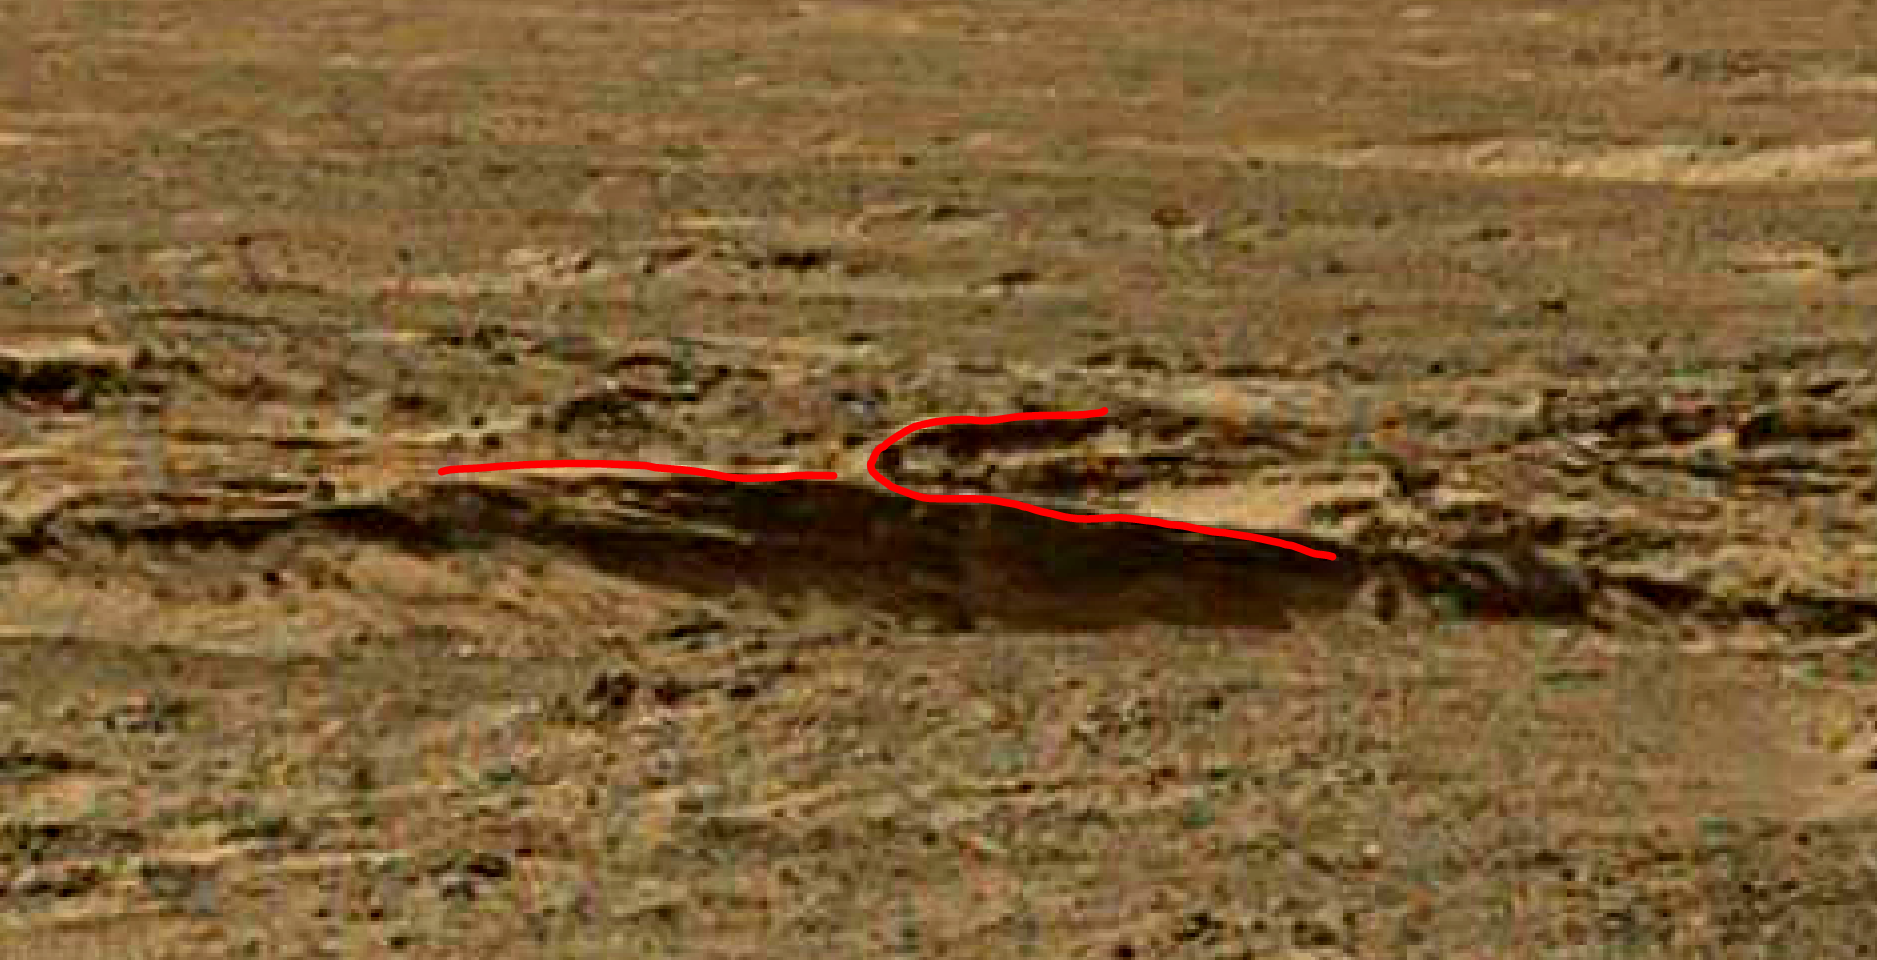 mars sol 1344 anomaly-artifacts 13a was life on mars